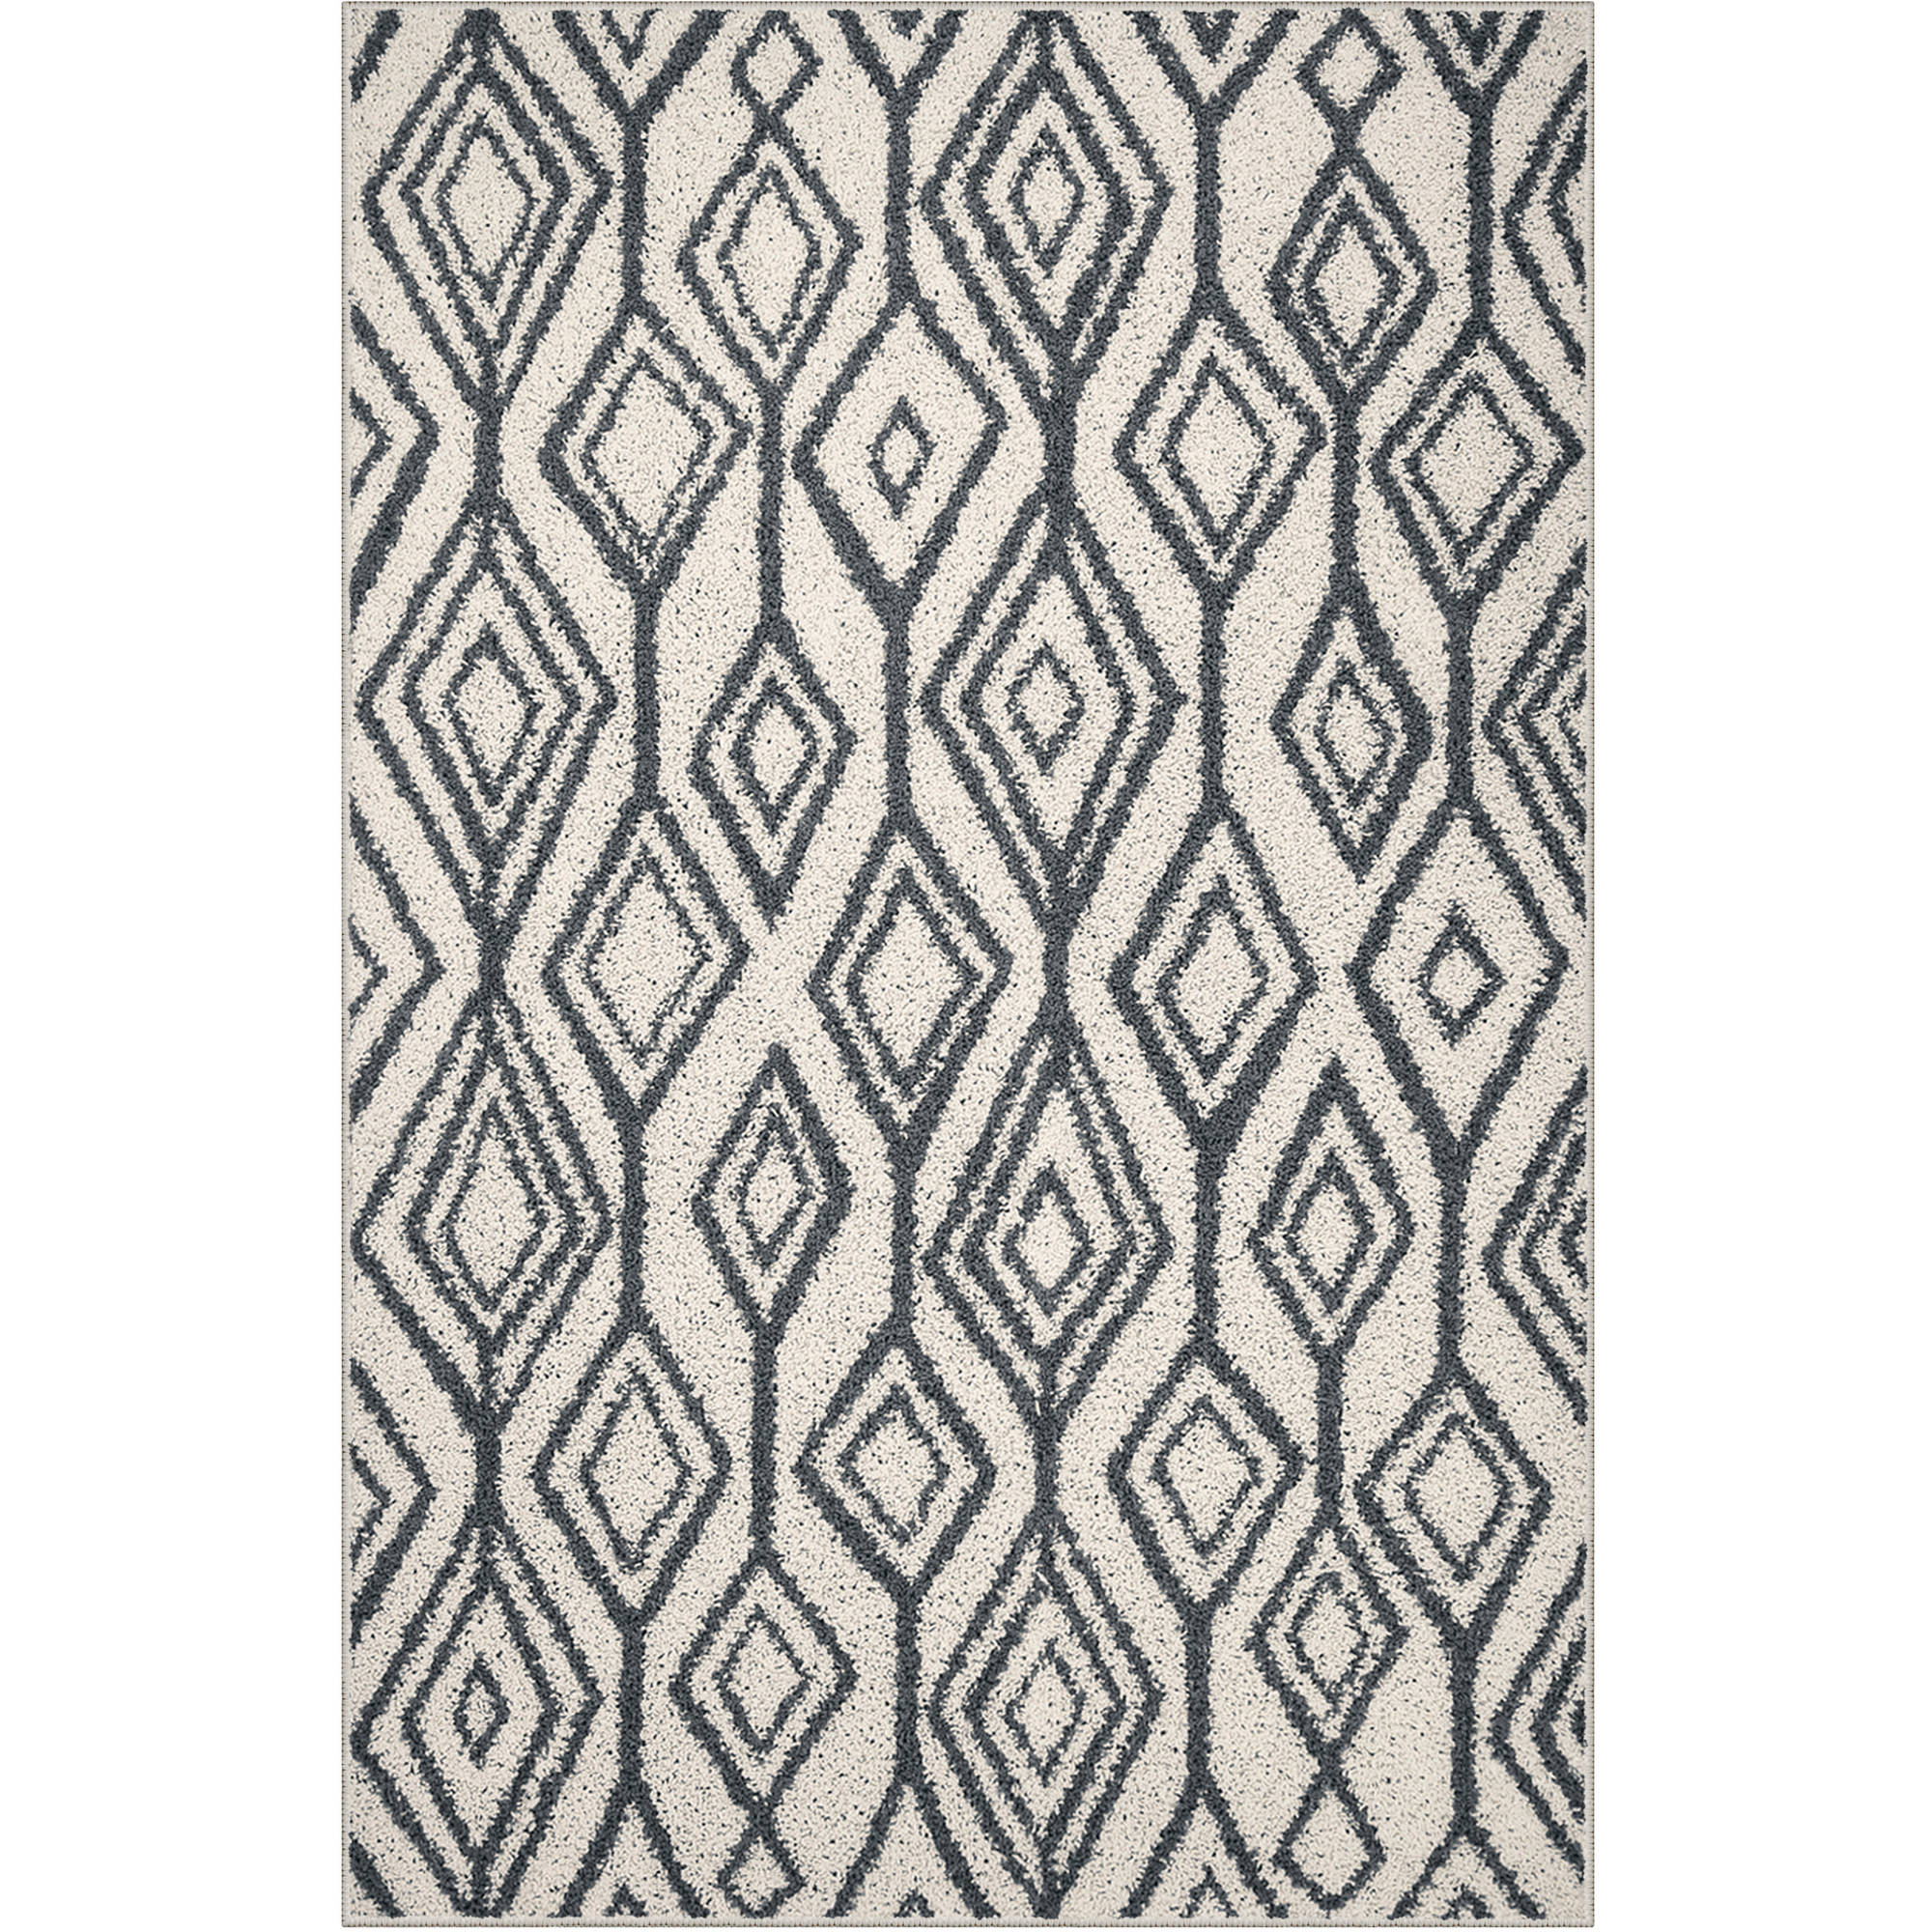 Mainstays Masai Shag Area Rug Or Runner Collection